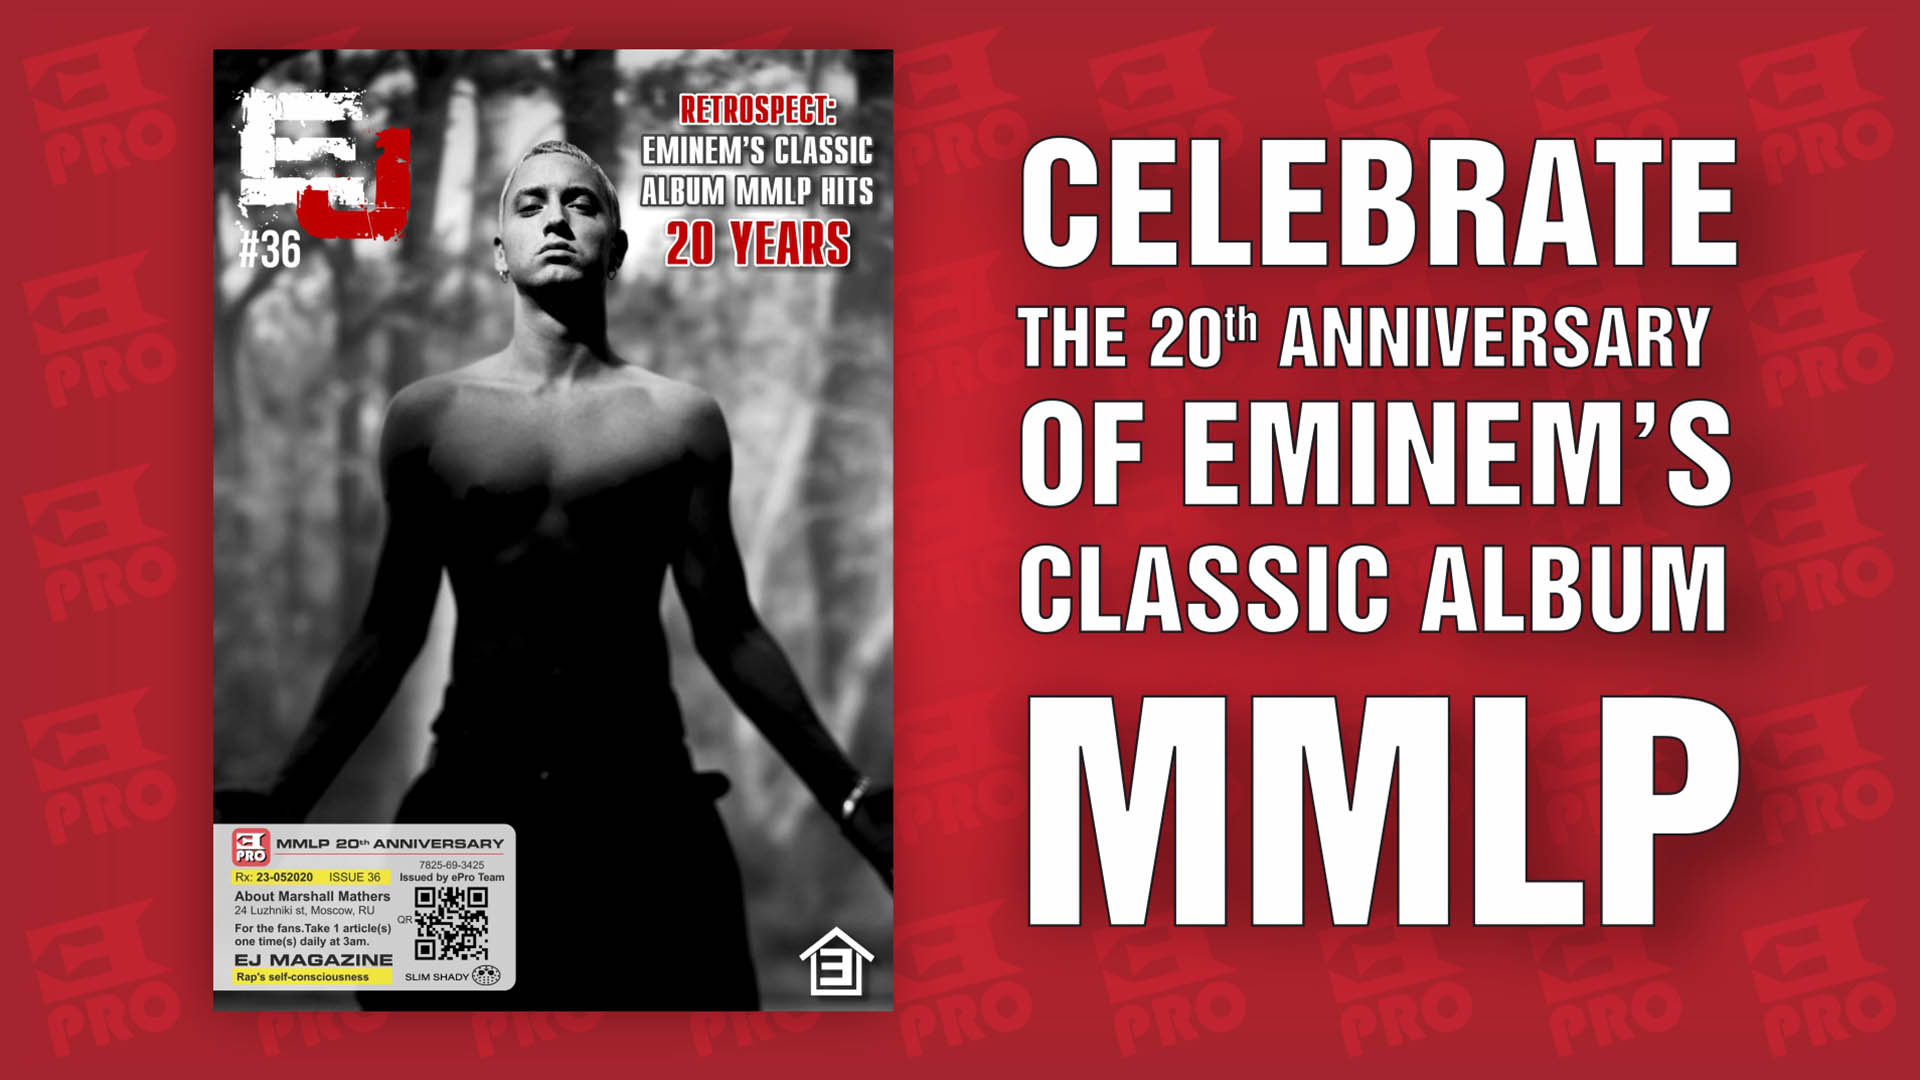 Today Eminem's Classic Album MMLP Turns 20 Years! A Special Edition Of EJ Magazine Is Available Now